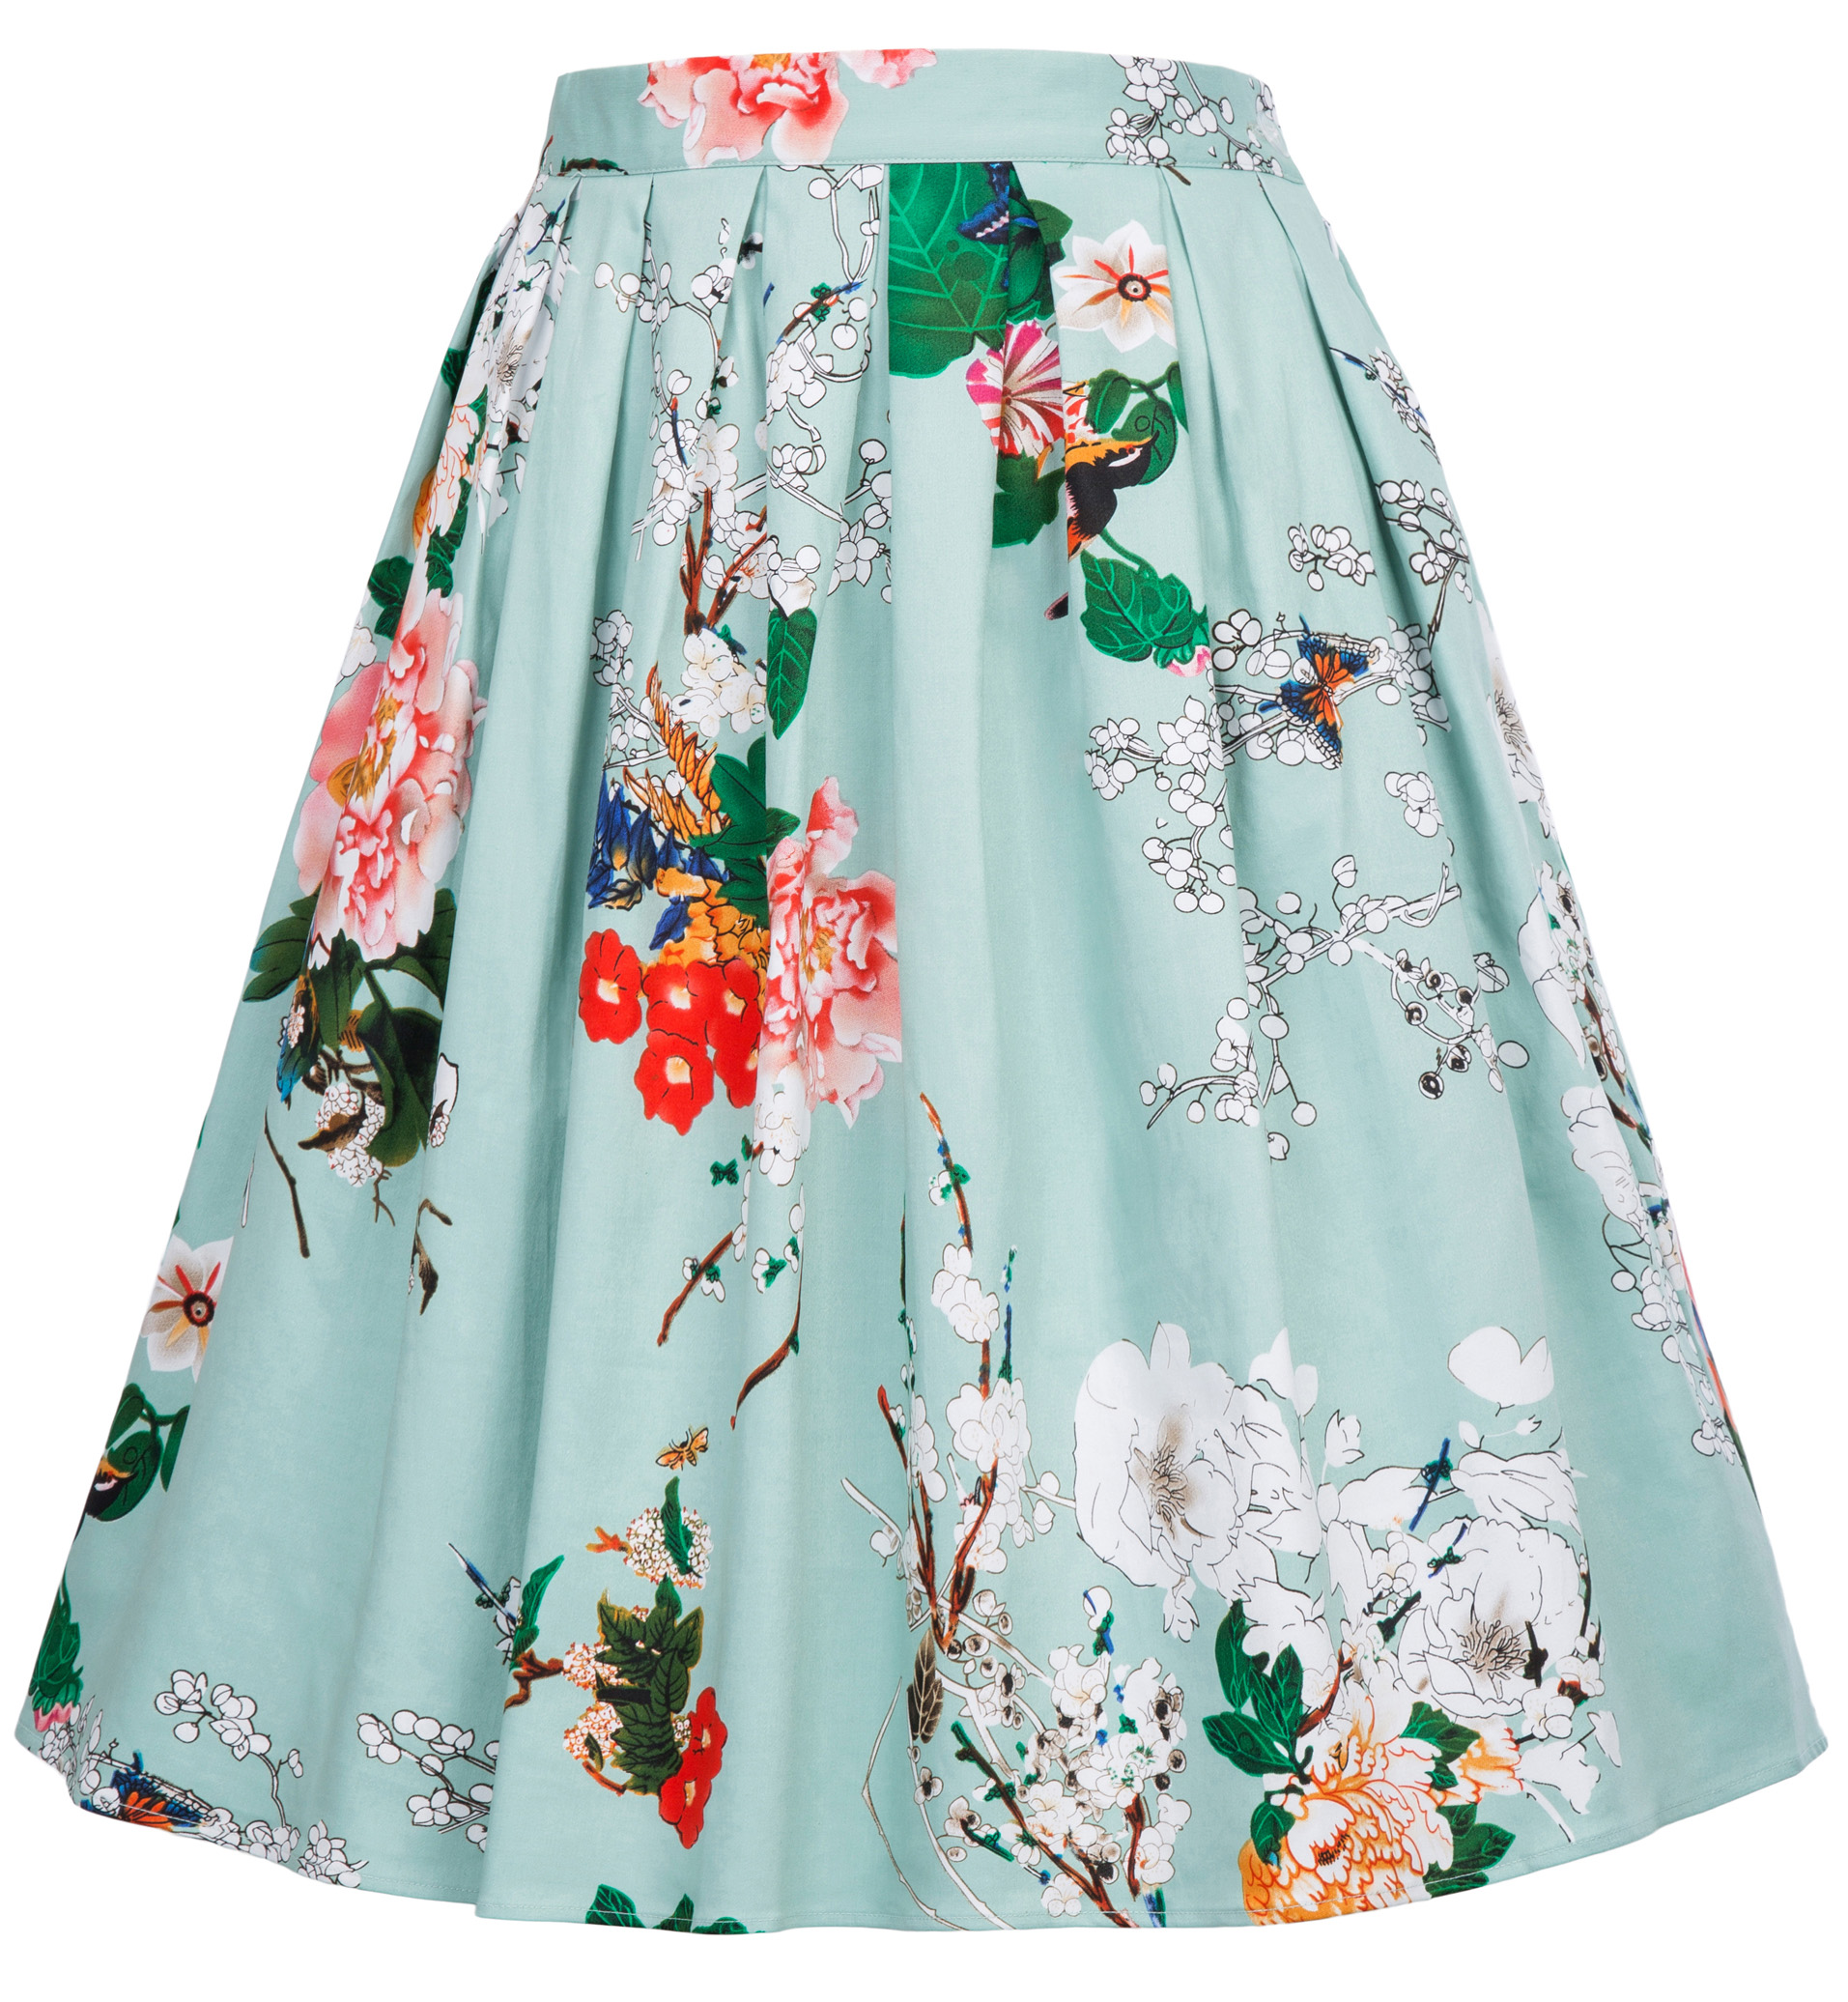 Women's Clothing Skirts S~2xl Faldas Mujer Womens Retro Vintage Skirt Belt Decorated Knee Length Skirts Cotton Flared A-line Swing Print Floral Skirt